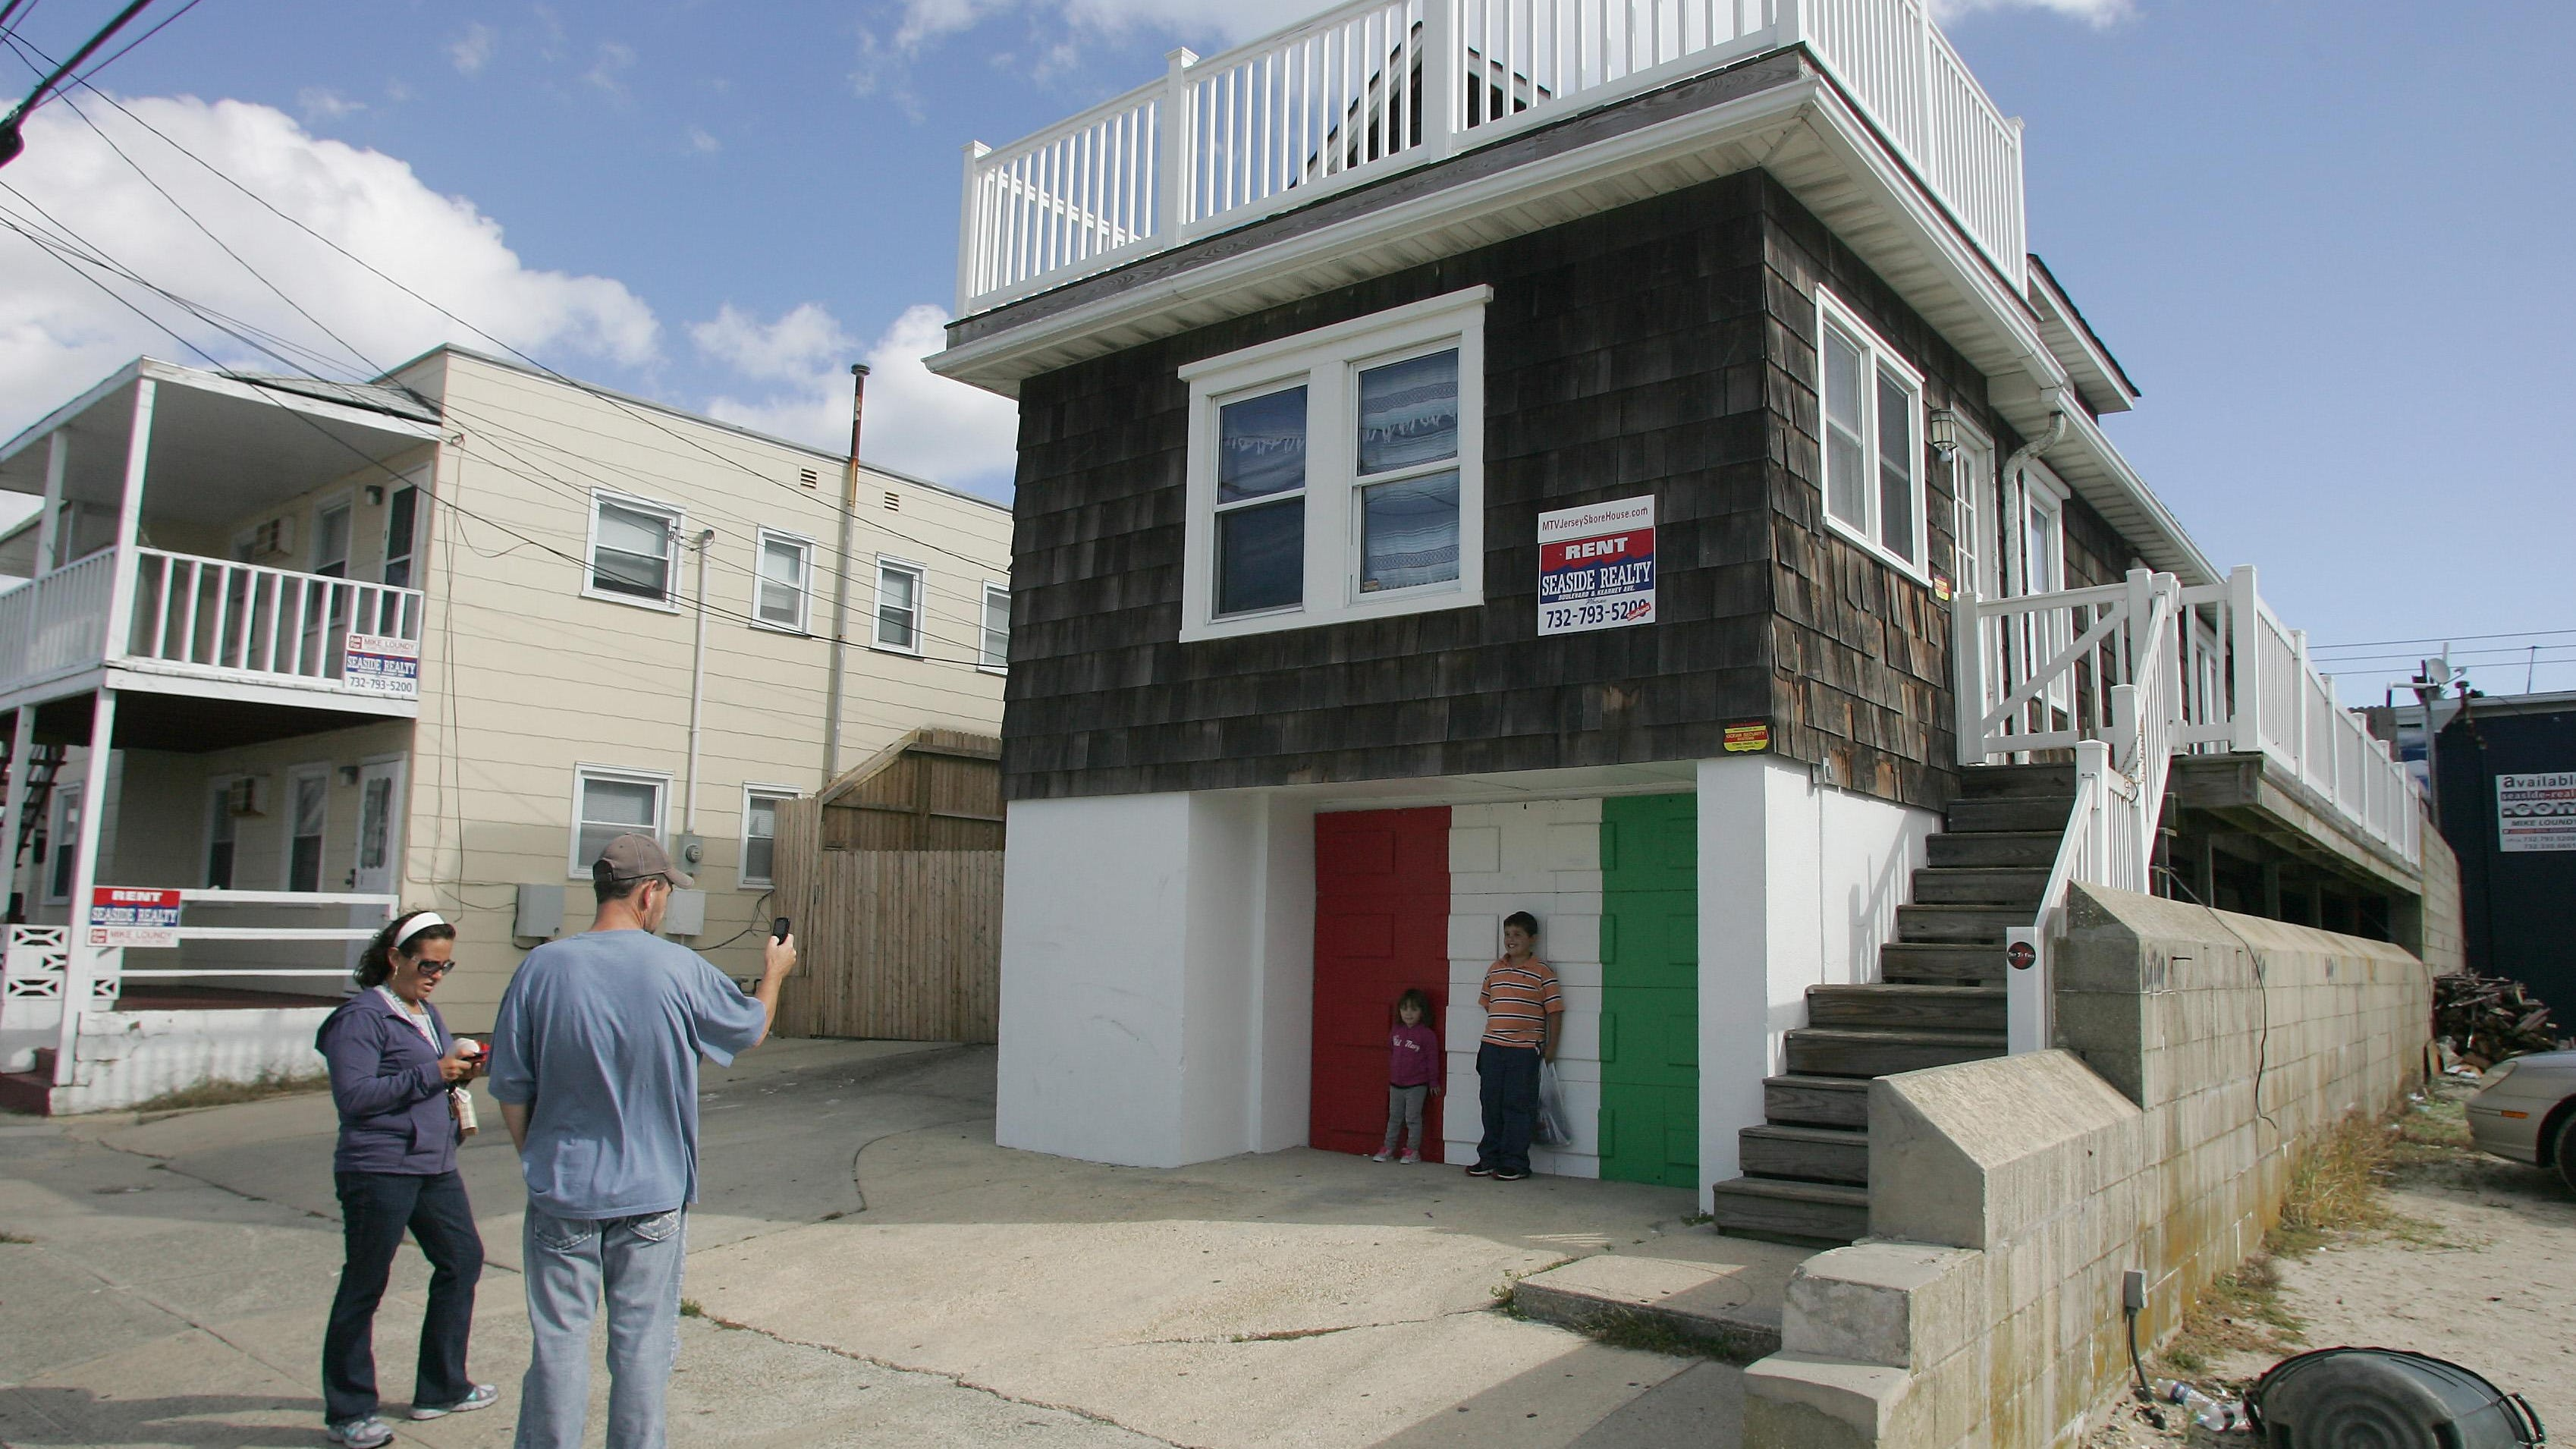 Jersey Shore MTV house still a big star in Seaside Heights, and ...